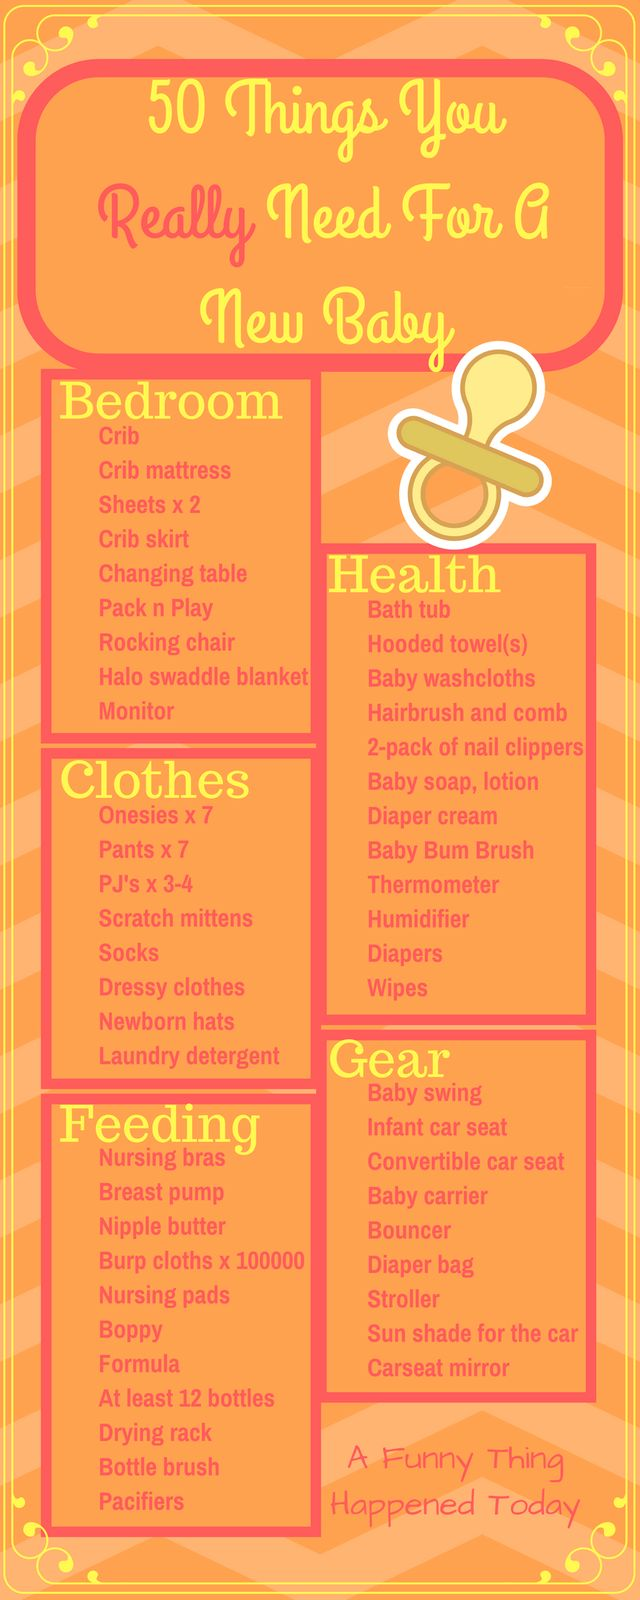 New Baby Checklist: 50 Things You ACTUALLY Need